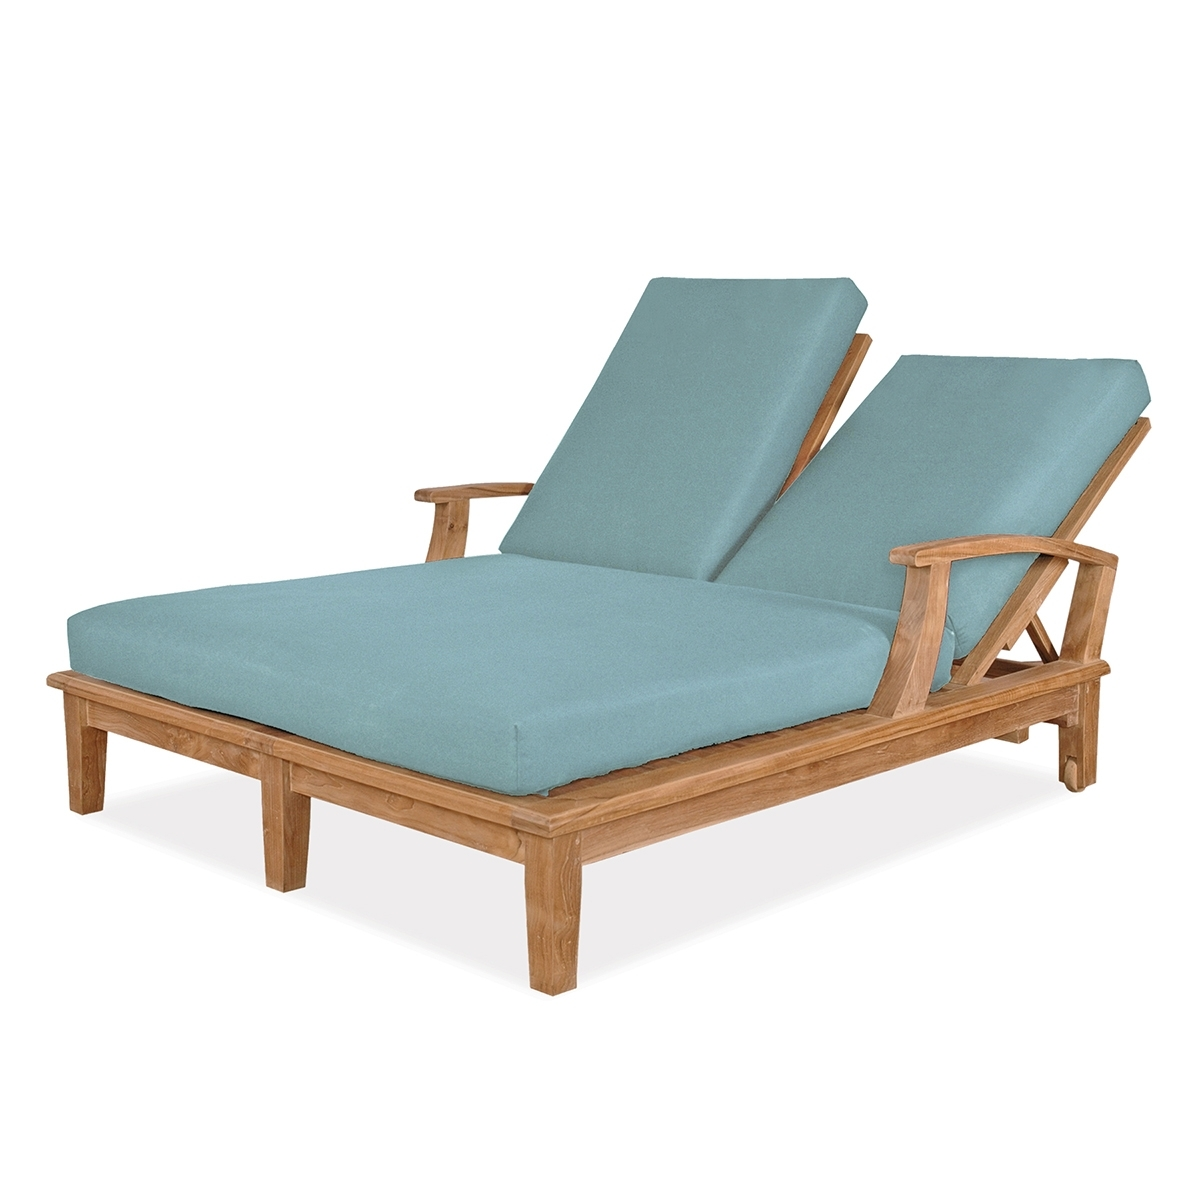 Well Liked Outdoor Chaise Cushions With Double Chaise Cushion Set Replacement (View 15 of 15)